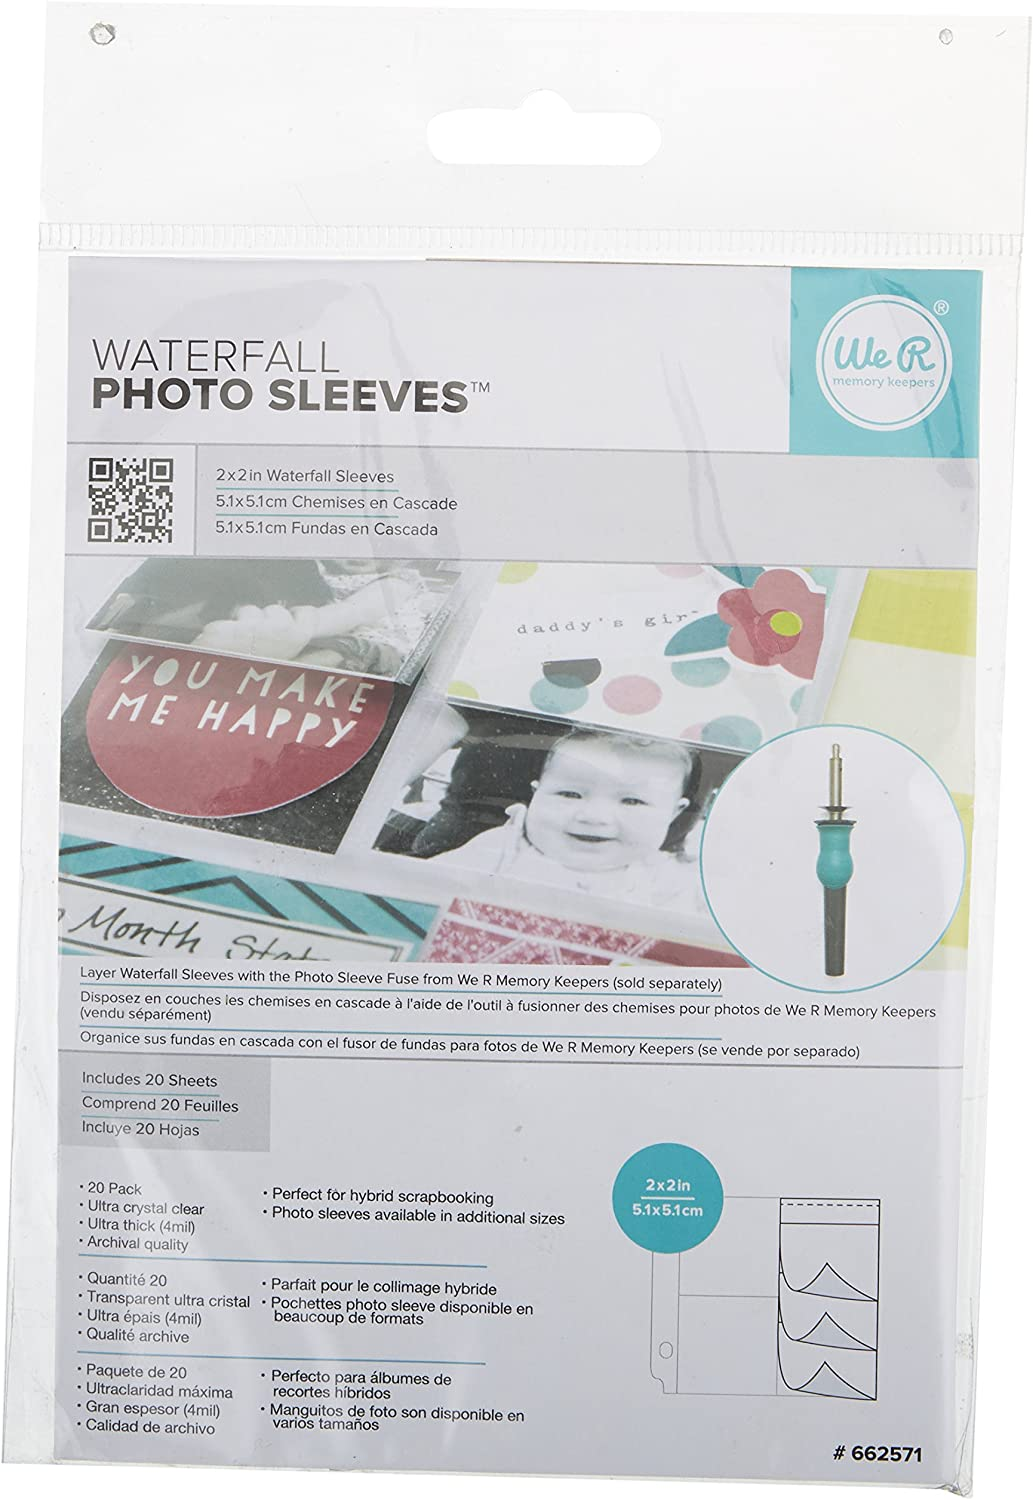 American Crafts We R Memory Keepers 20 Piece Photo Sleeves Waterfall 4 x 4/""